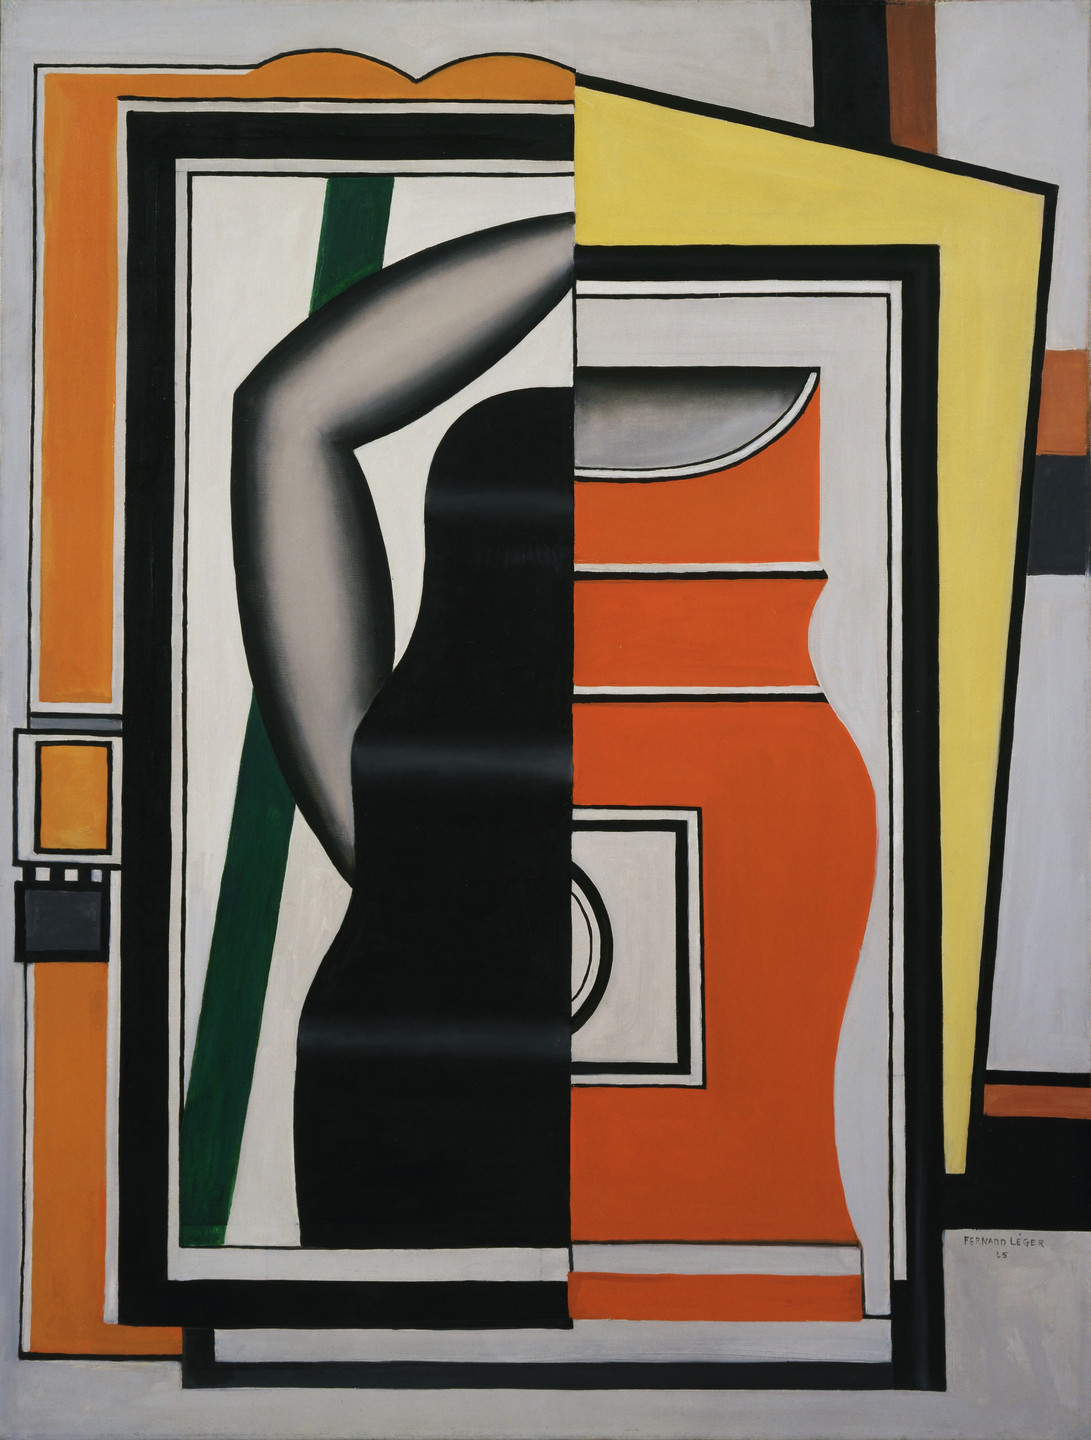 Fernand Léger. The Mirror. 1925